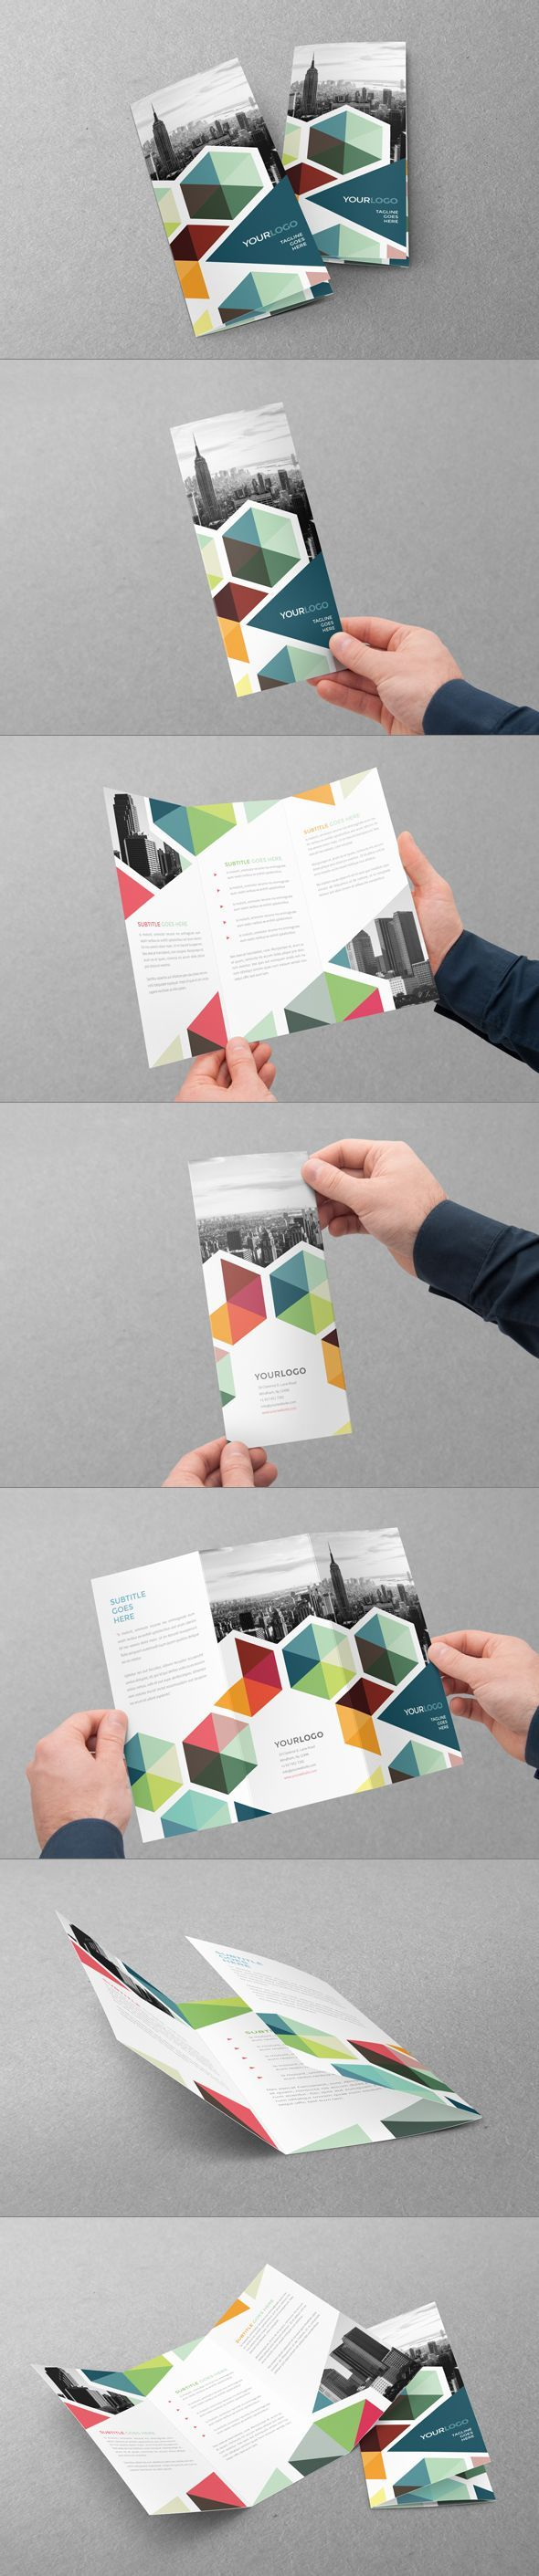 Please contact Printing Fly for help with printing and designing your brochure. We offer free same day estimates and are happy to take your call, please contact our team today (310) 287-9982